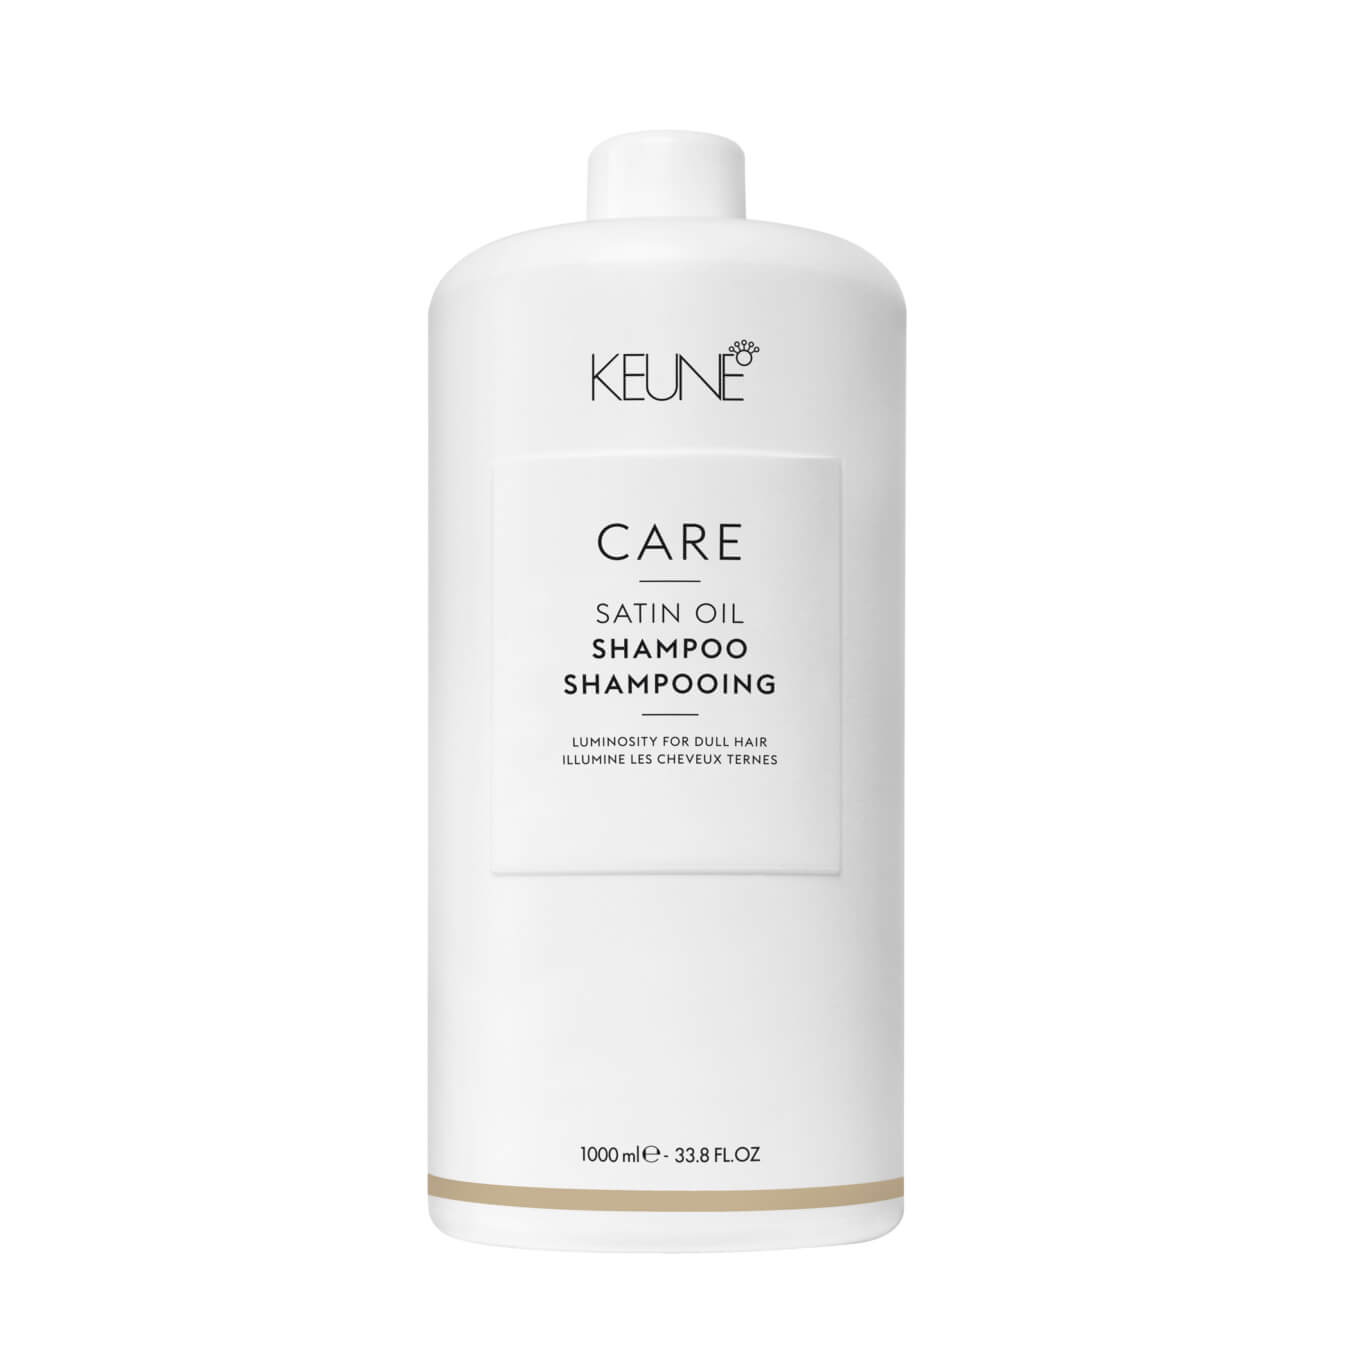 Koop Keune Care Satin Oil Shampoo 1000ml